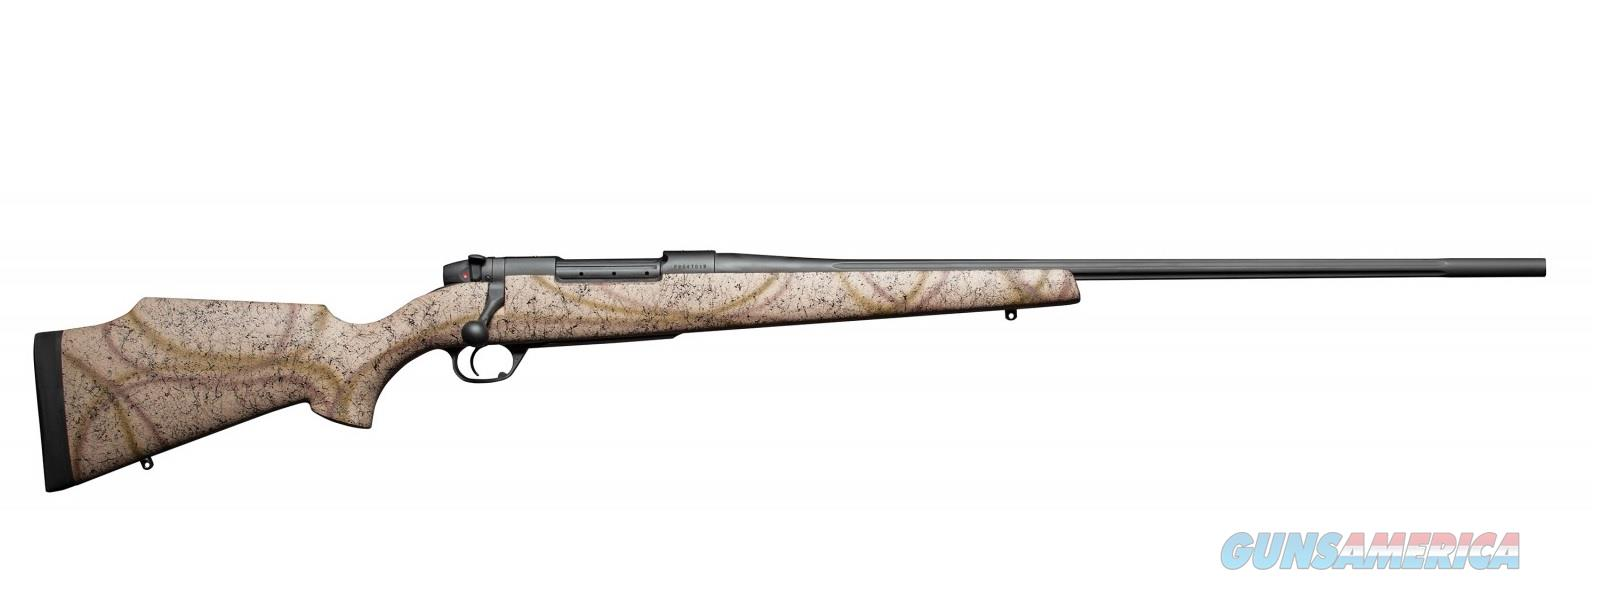 """Weatherby Mark V Outfitter RC 6.5-300 Wby Mag 28"""" MOFM653WR8B  Guns > Rifles > Weatherby Rifles > Sporting"""